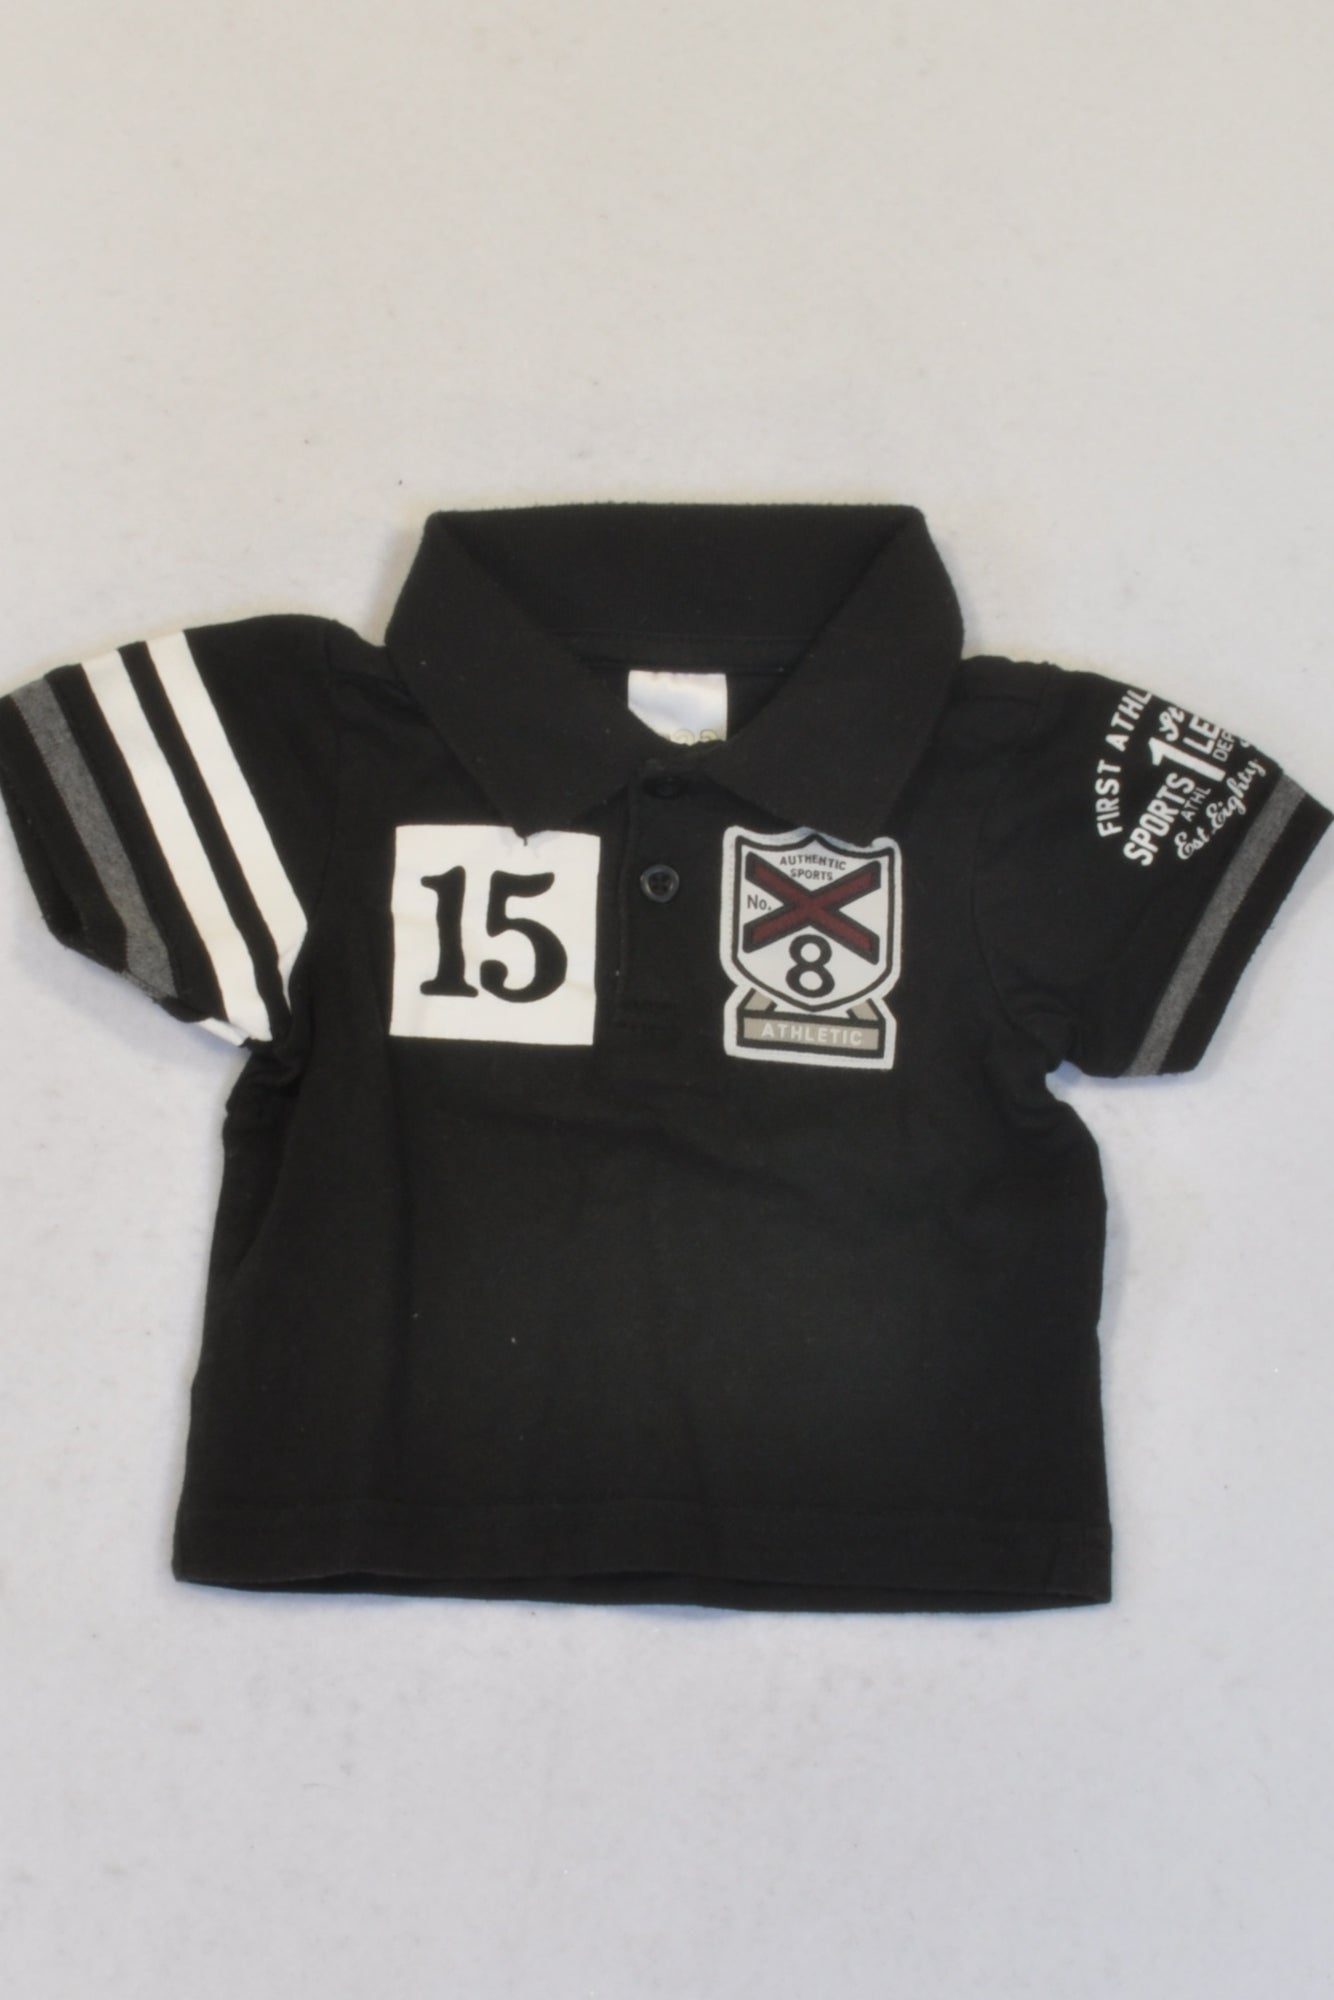 Edgars Black Authentic Athletic Golf Shirt Boys 6-9 months